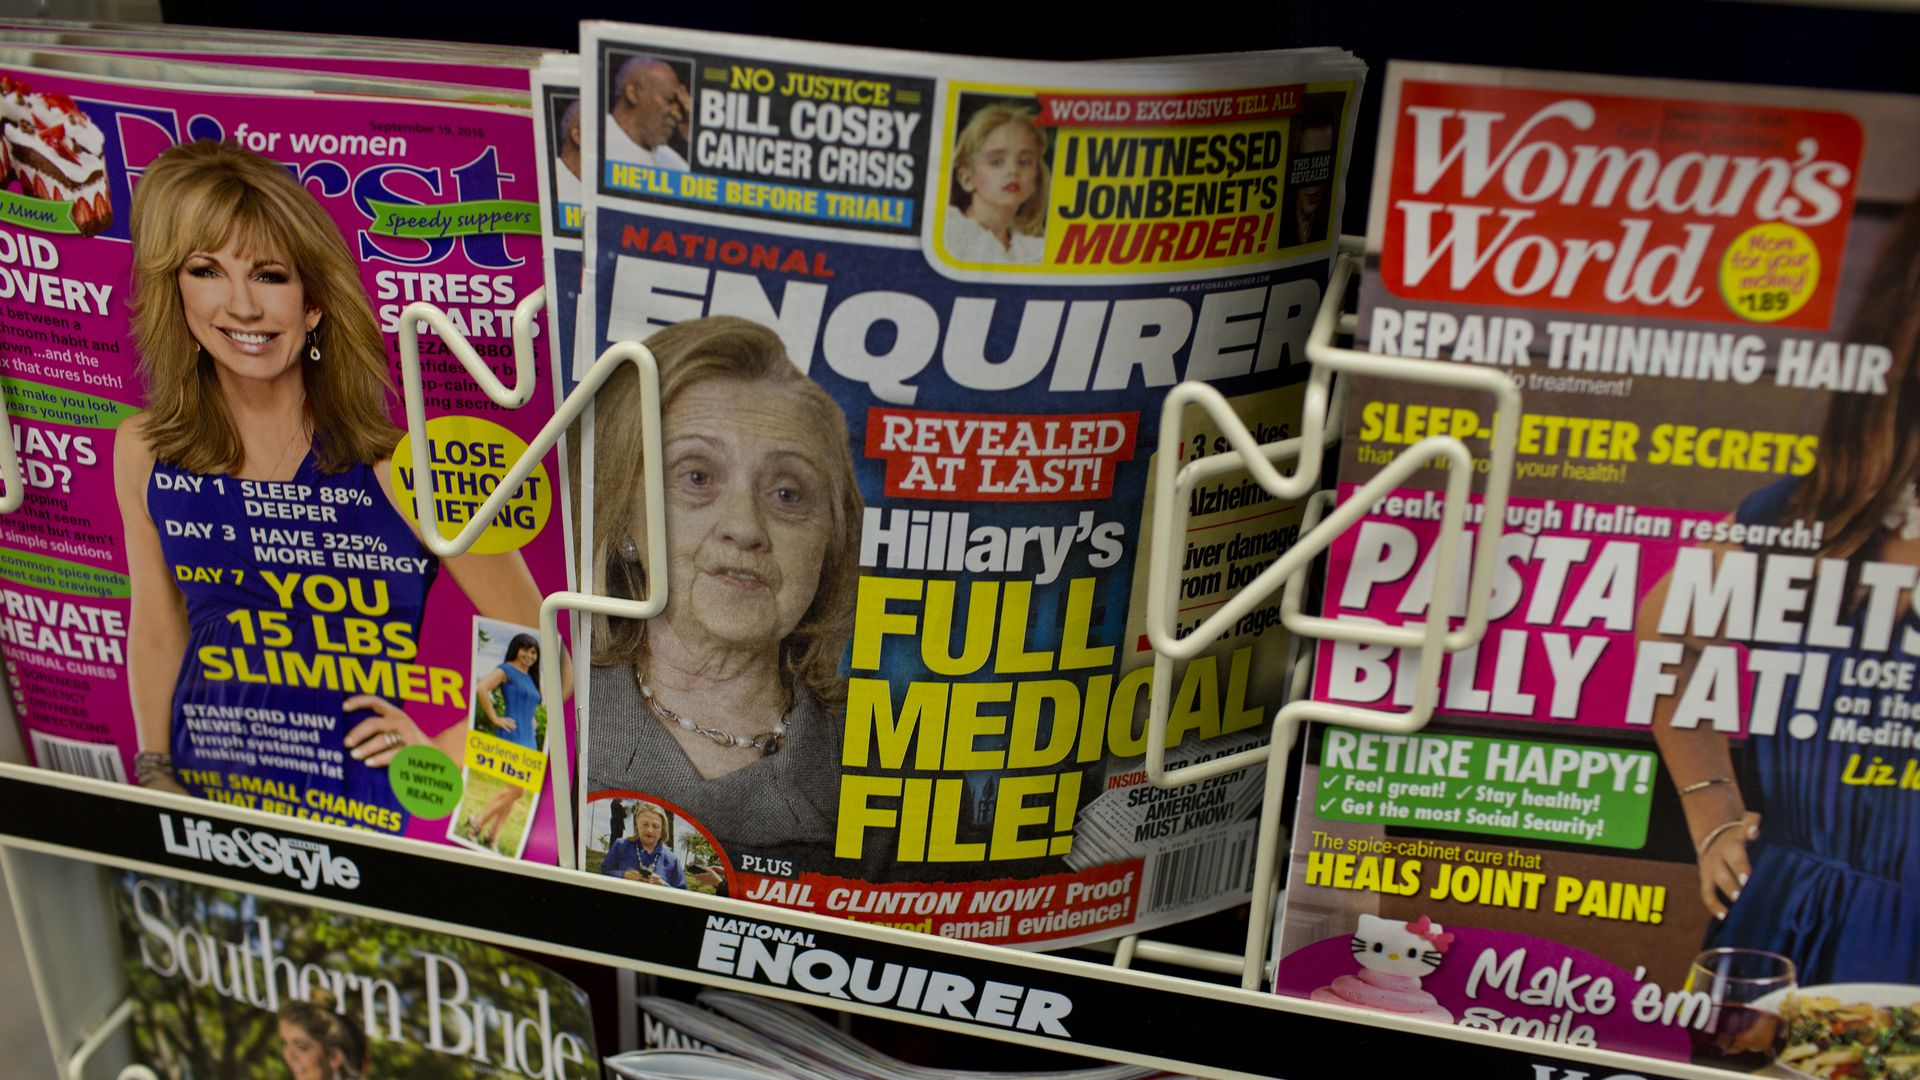 In this image, a stack of National Enquirer magazines sit between two others in a store rack.